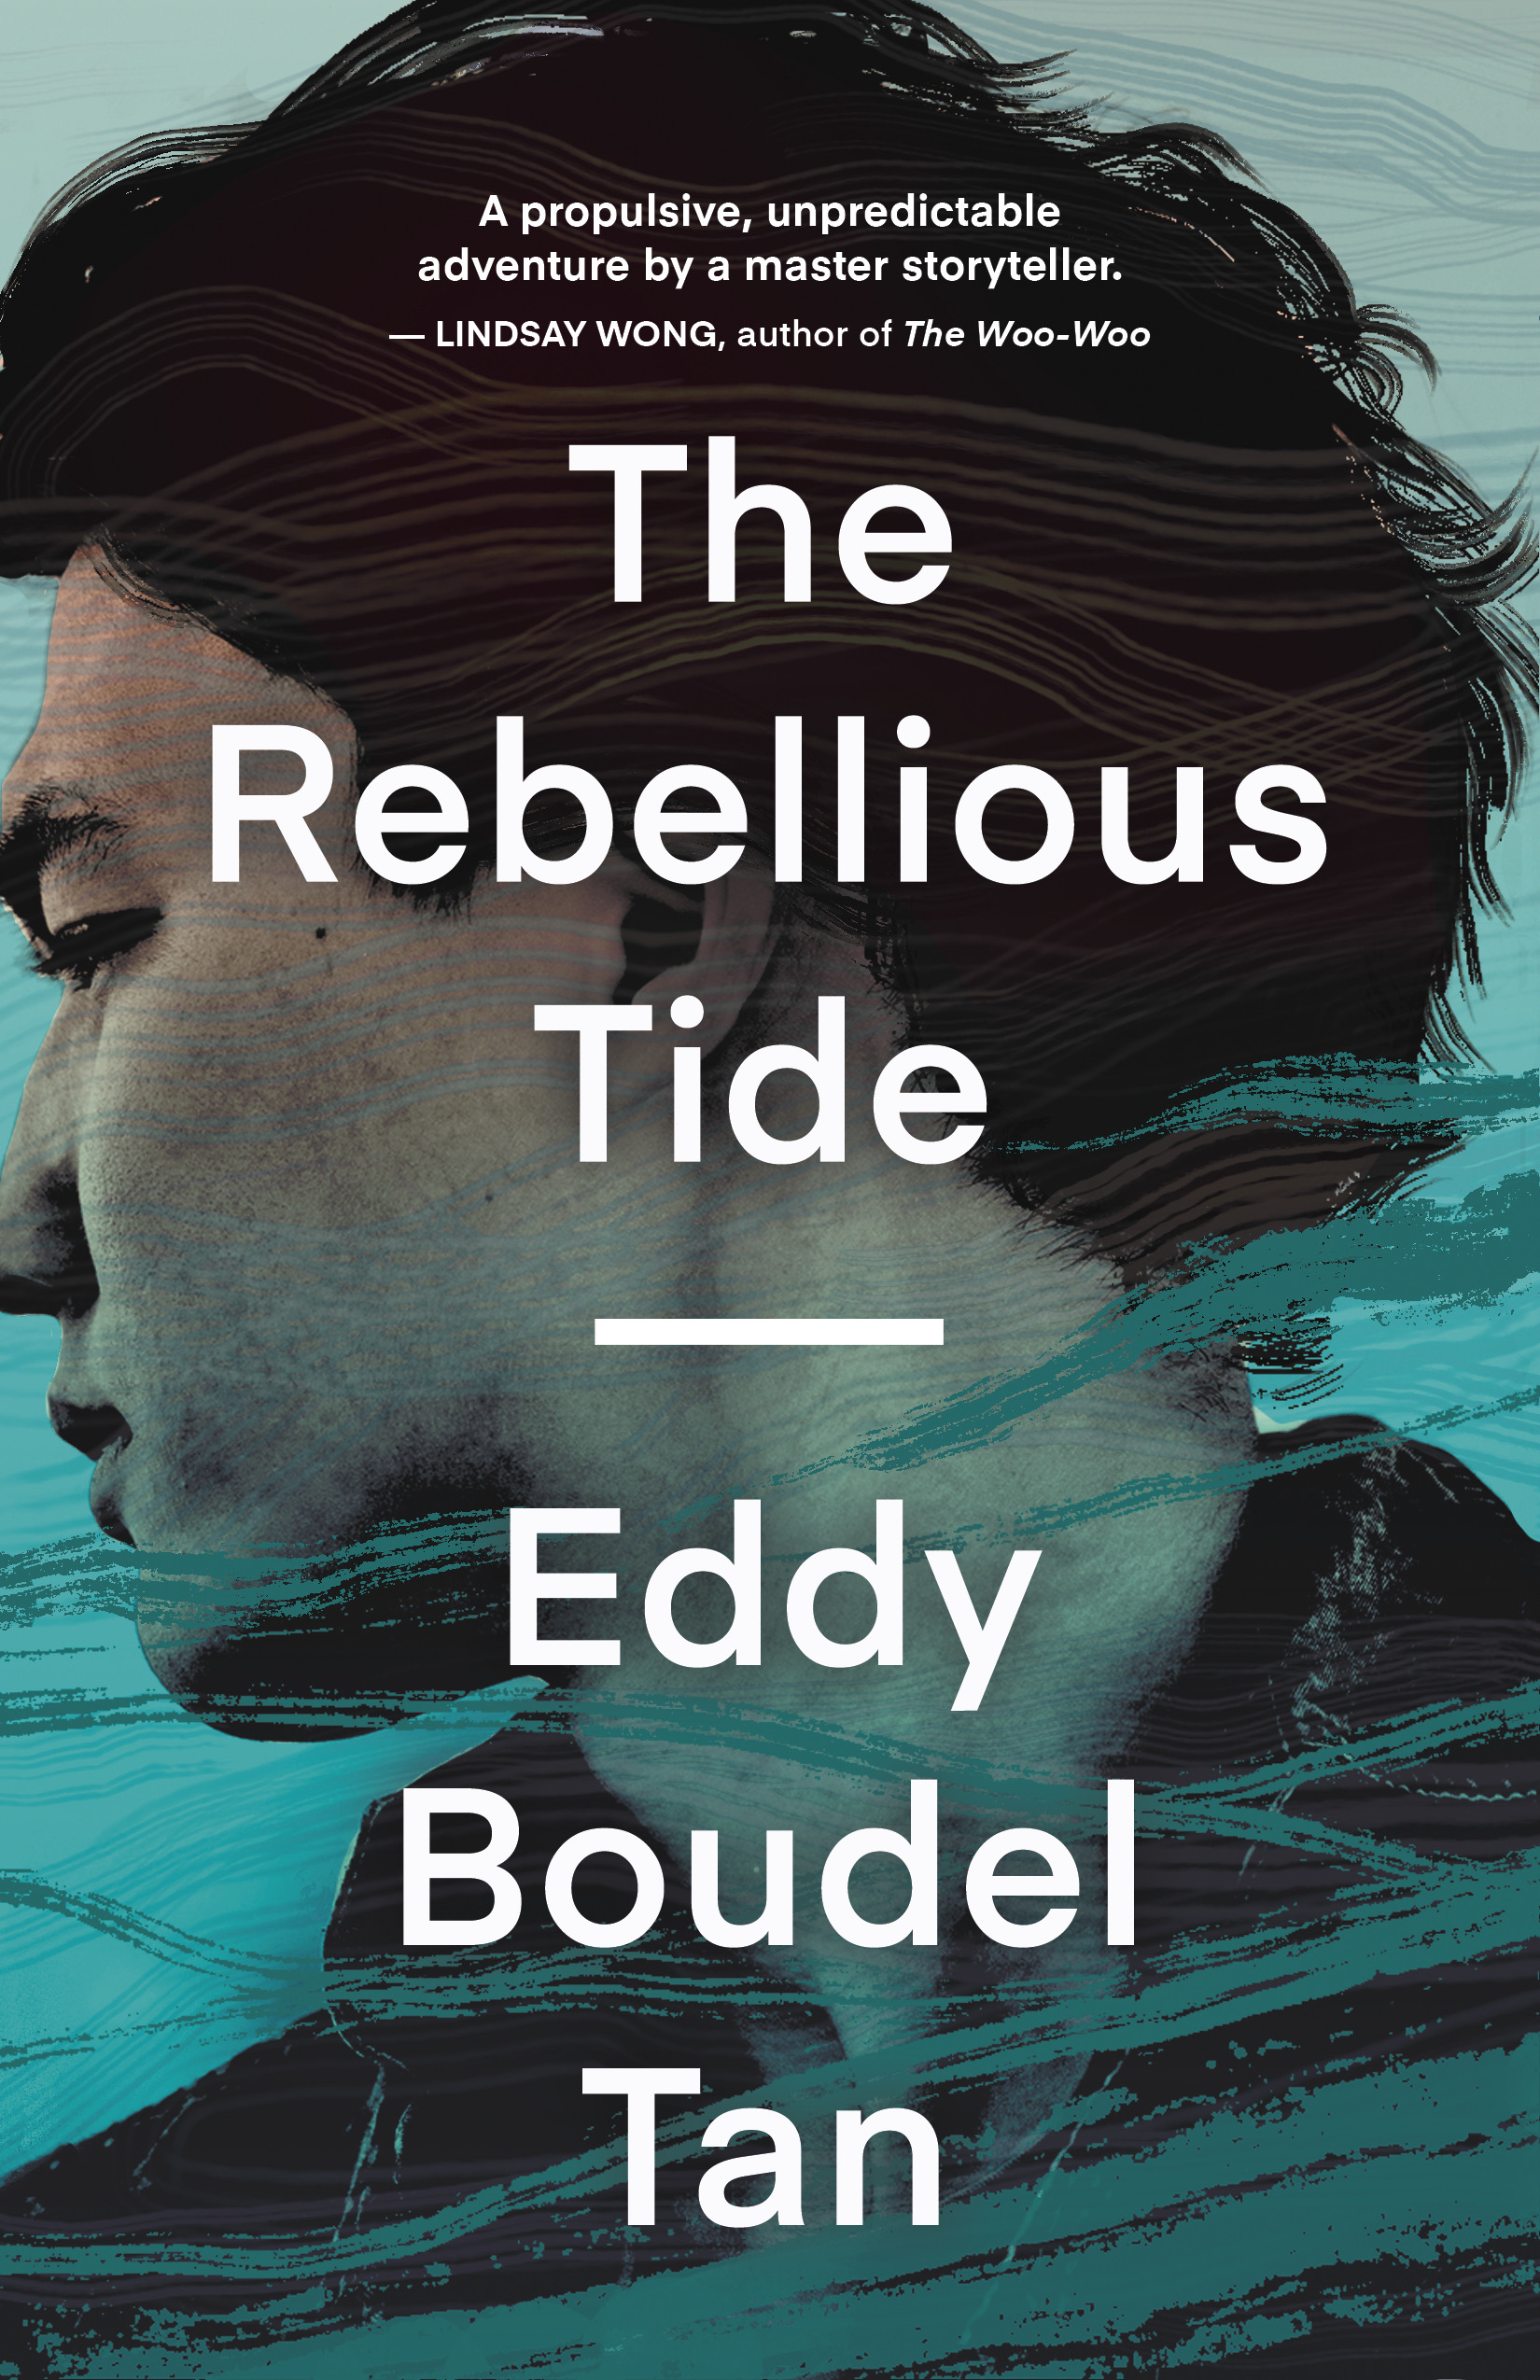 The cover of The Rebellious Tide. The cover features an illustration of a face, viewed from the side. They have dark short hair and digital brushstrokes go across their face, reminiscent of waves. Text reads: A propulsive, unpredictable adventure by a master storyteller. – Lindsay Won , author of The Woo-Woo. End ID